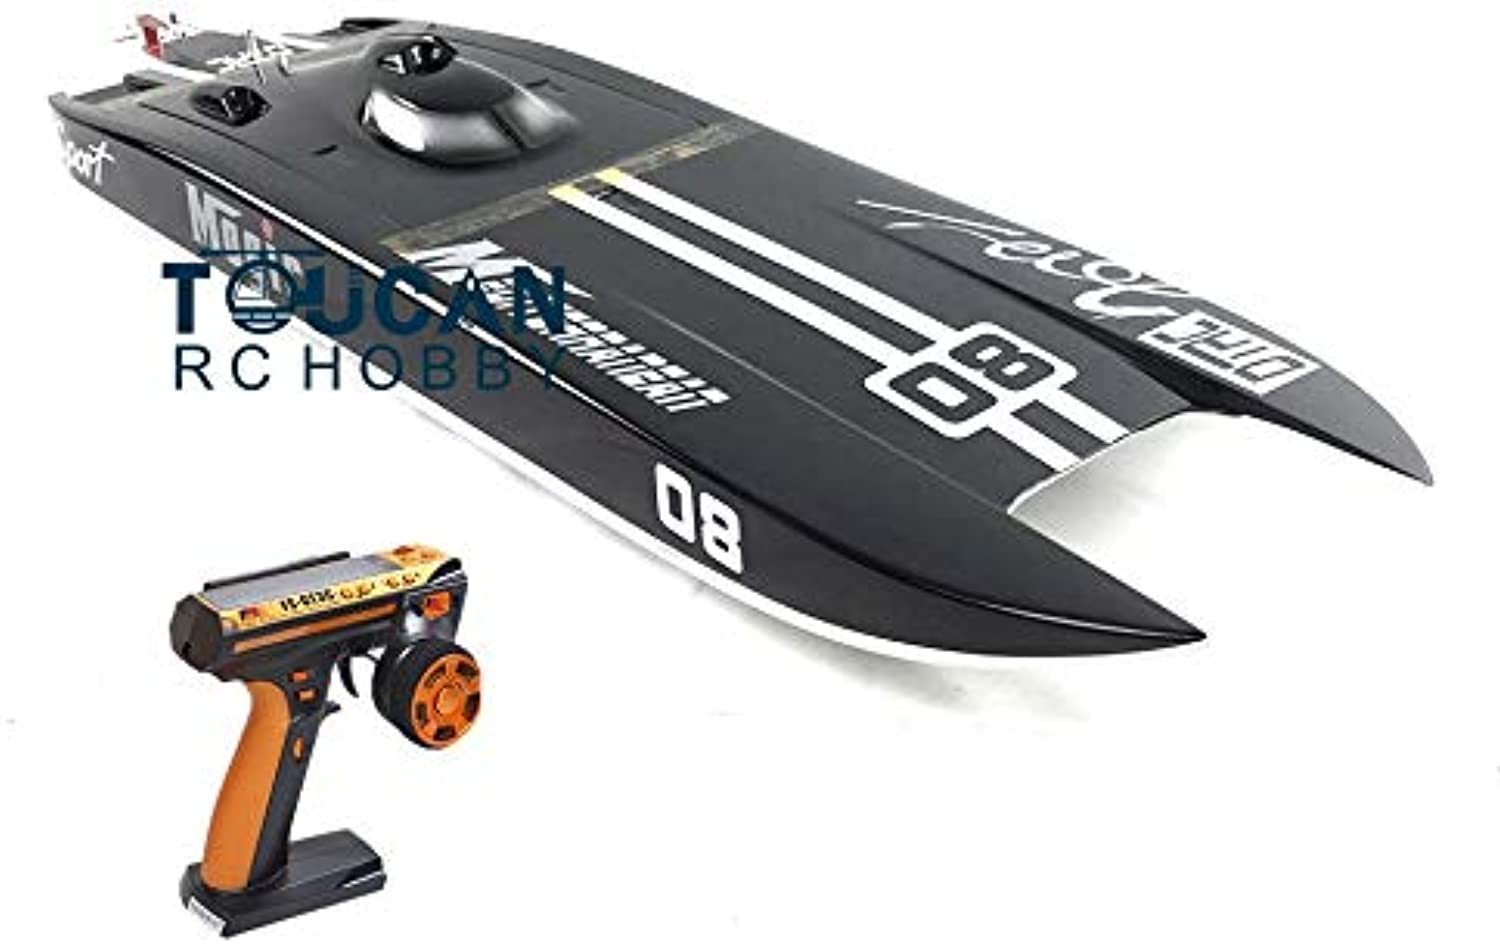 Generic E32 RTR Germany Cat Fiber Glass Electric Racing Speed RC Boat W 120A ESC 3200KV Brushless Motor Radio SystemBlack